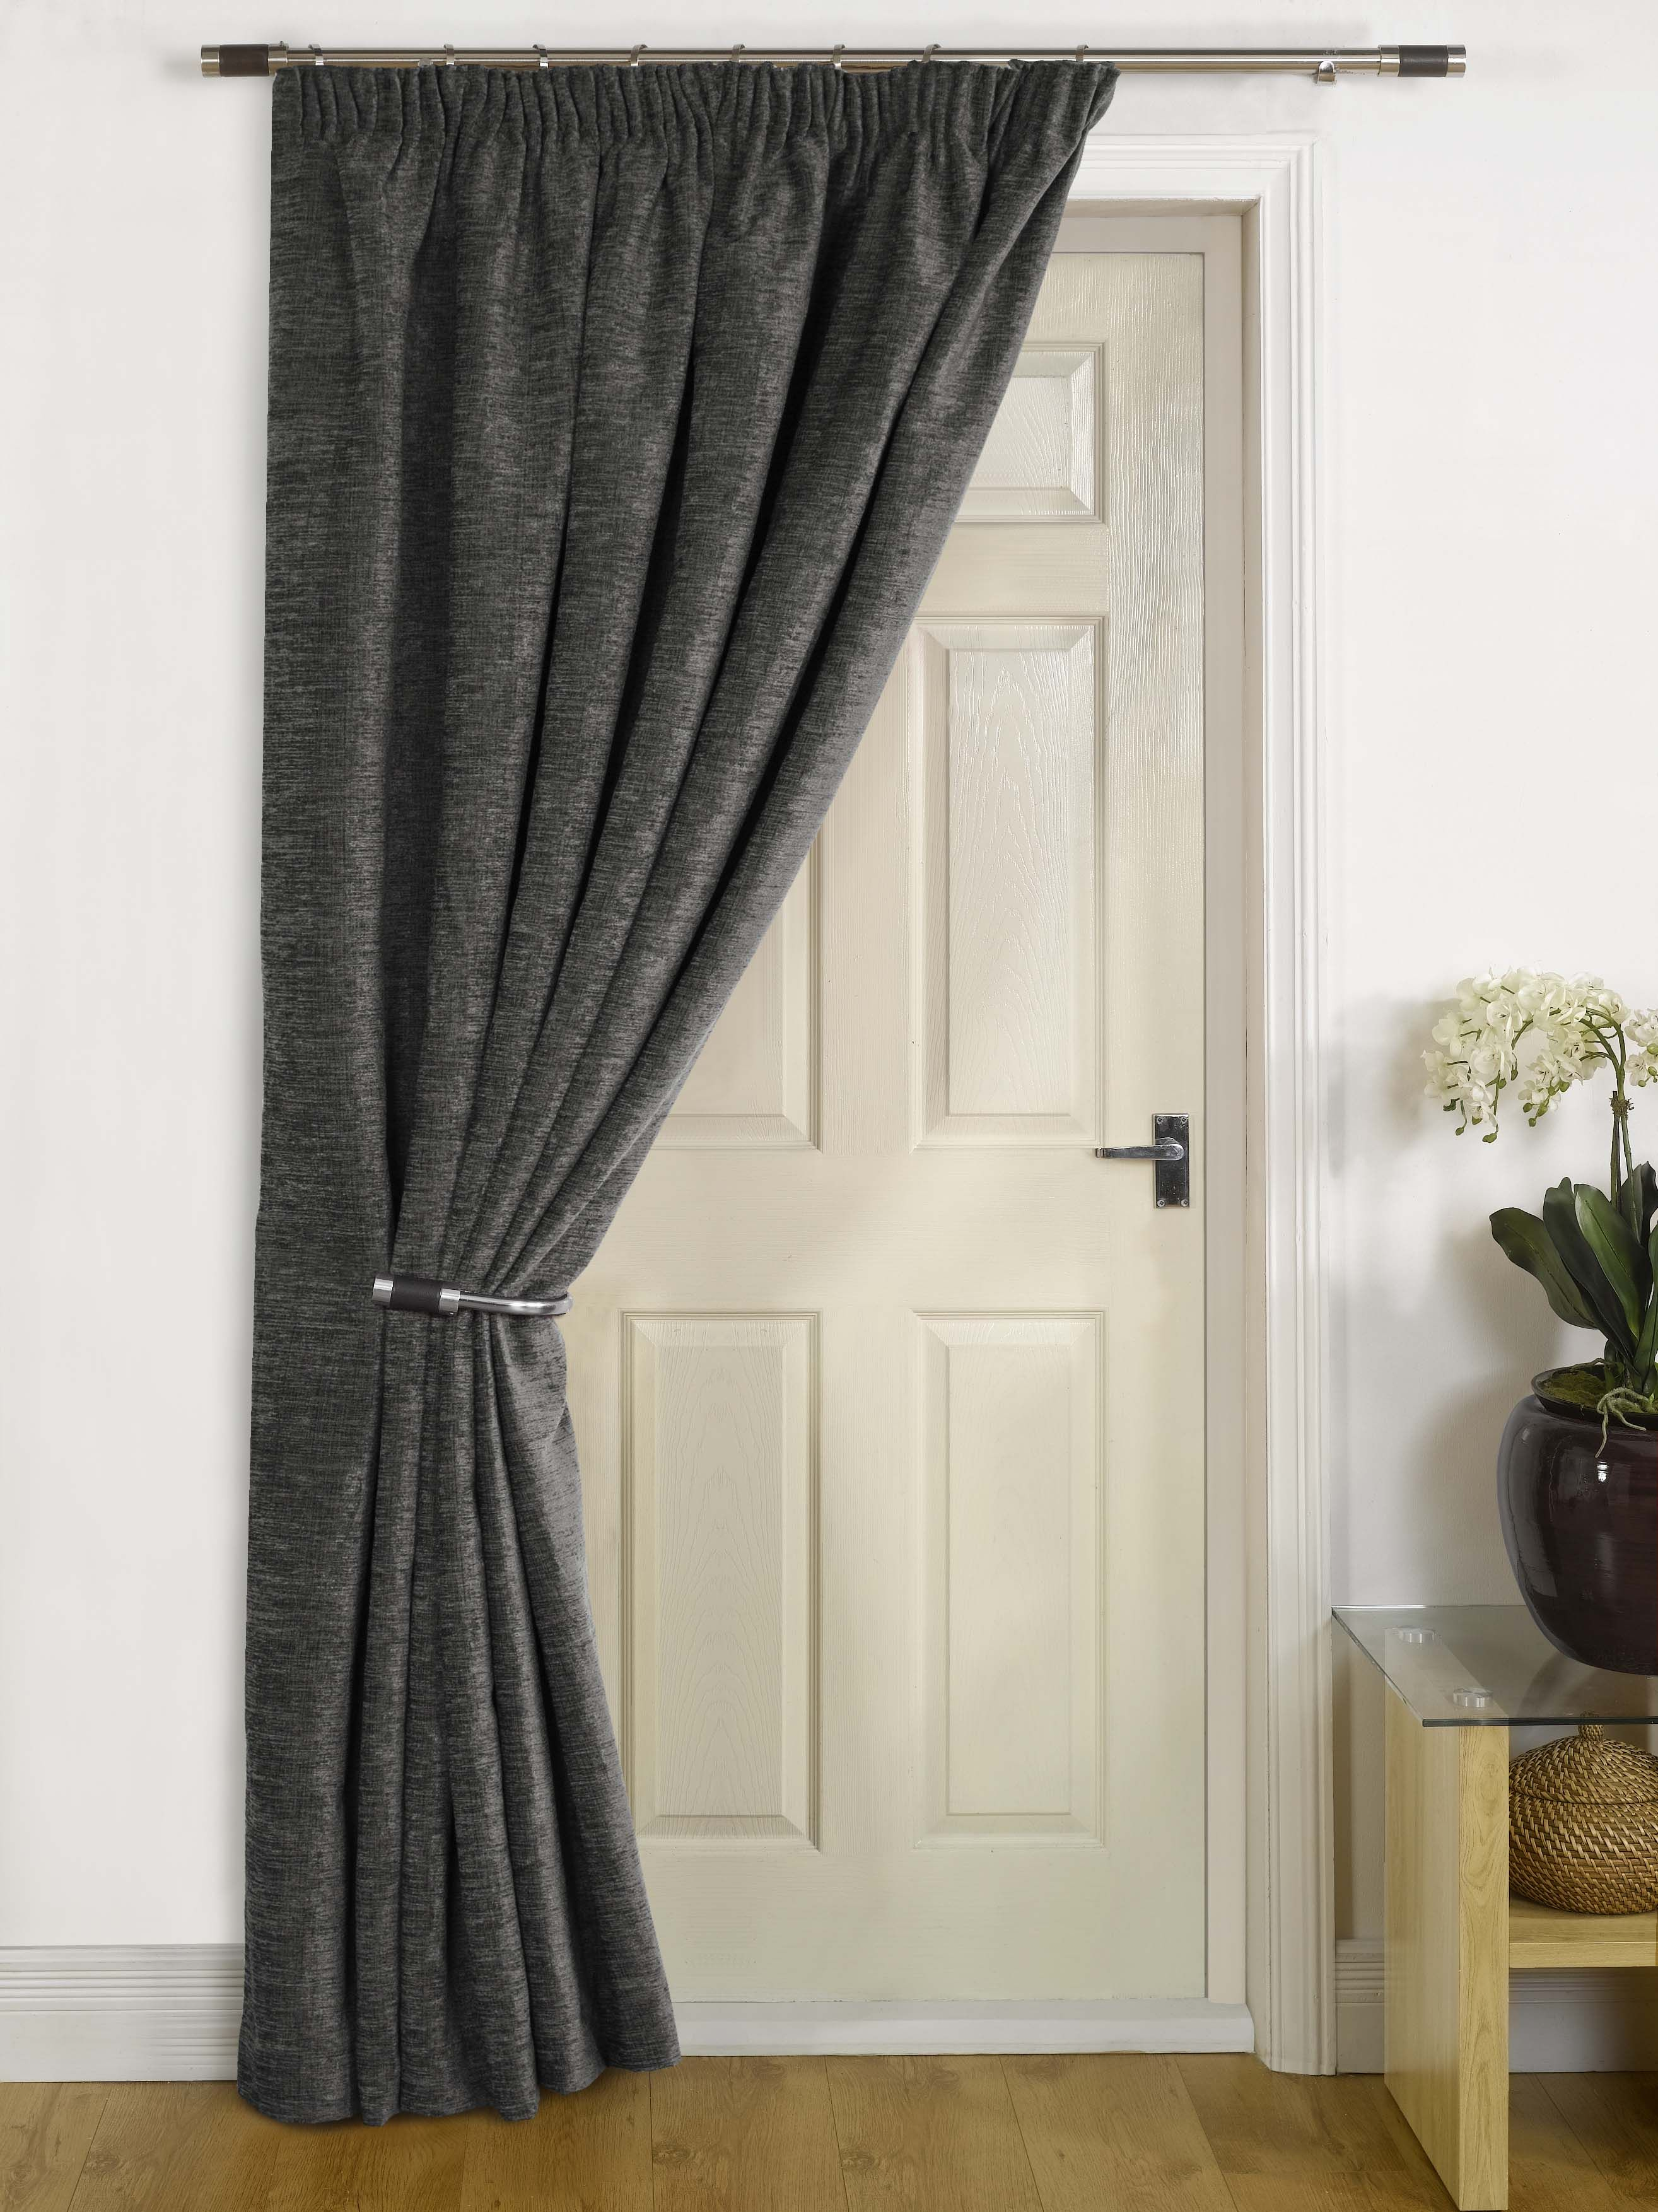 Change The Style And Look Of Your Room With Door Curtains Door